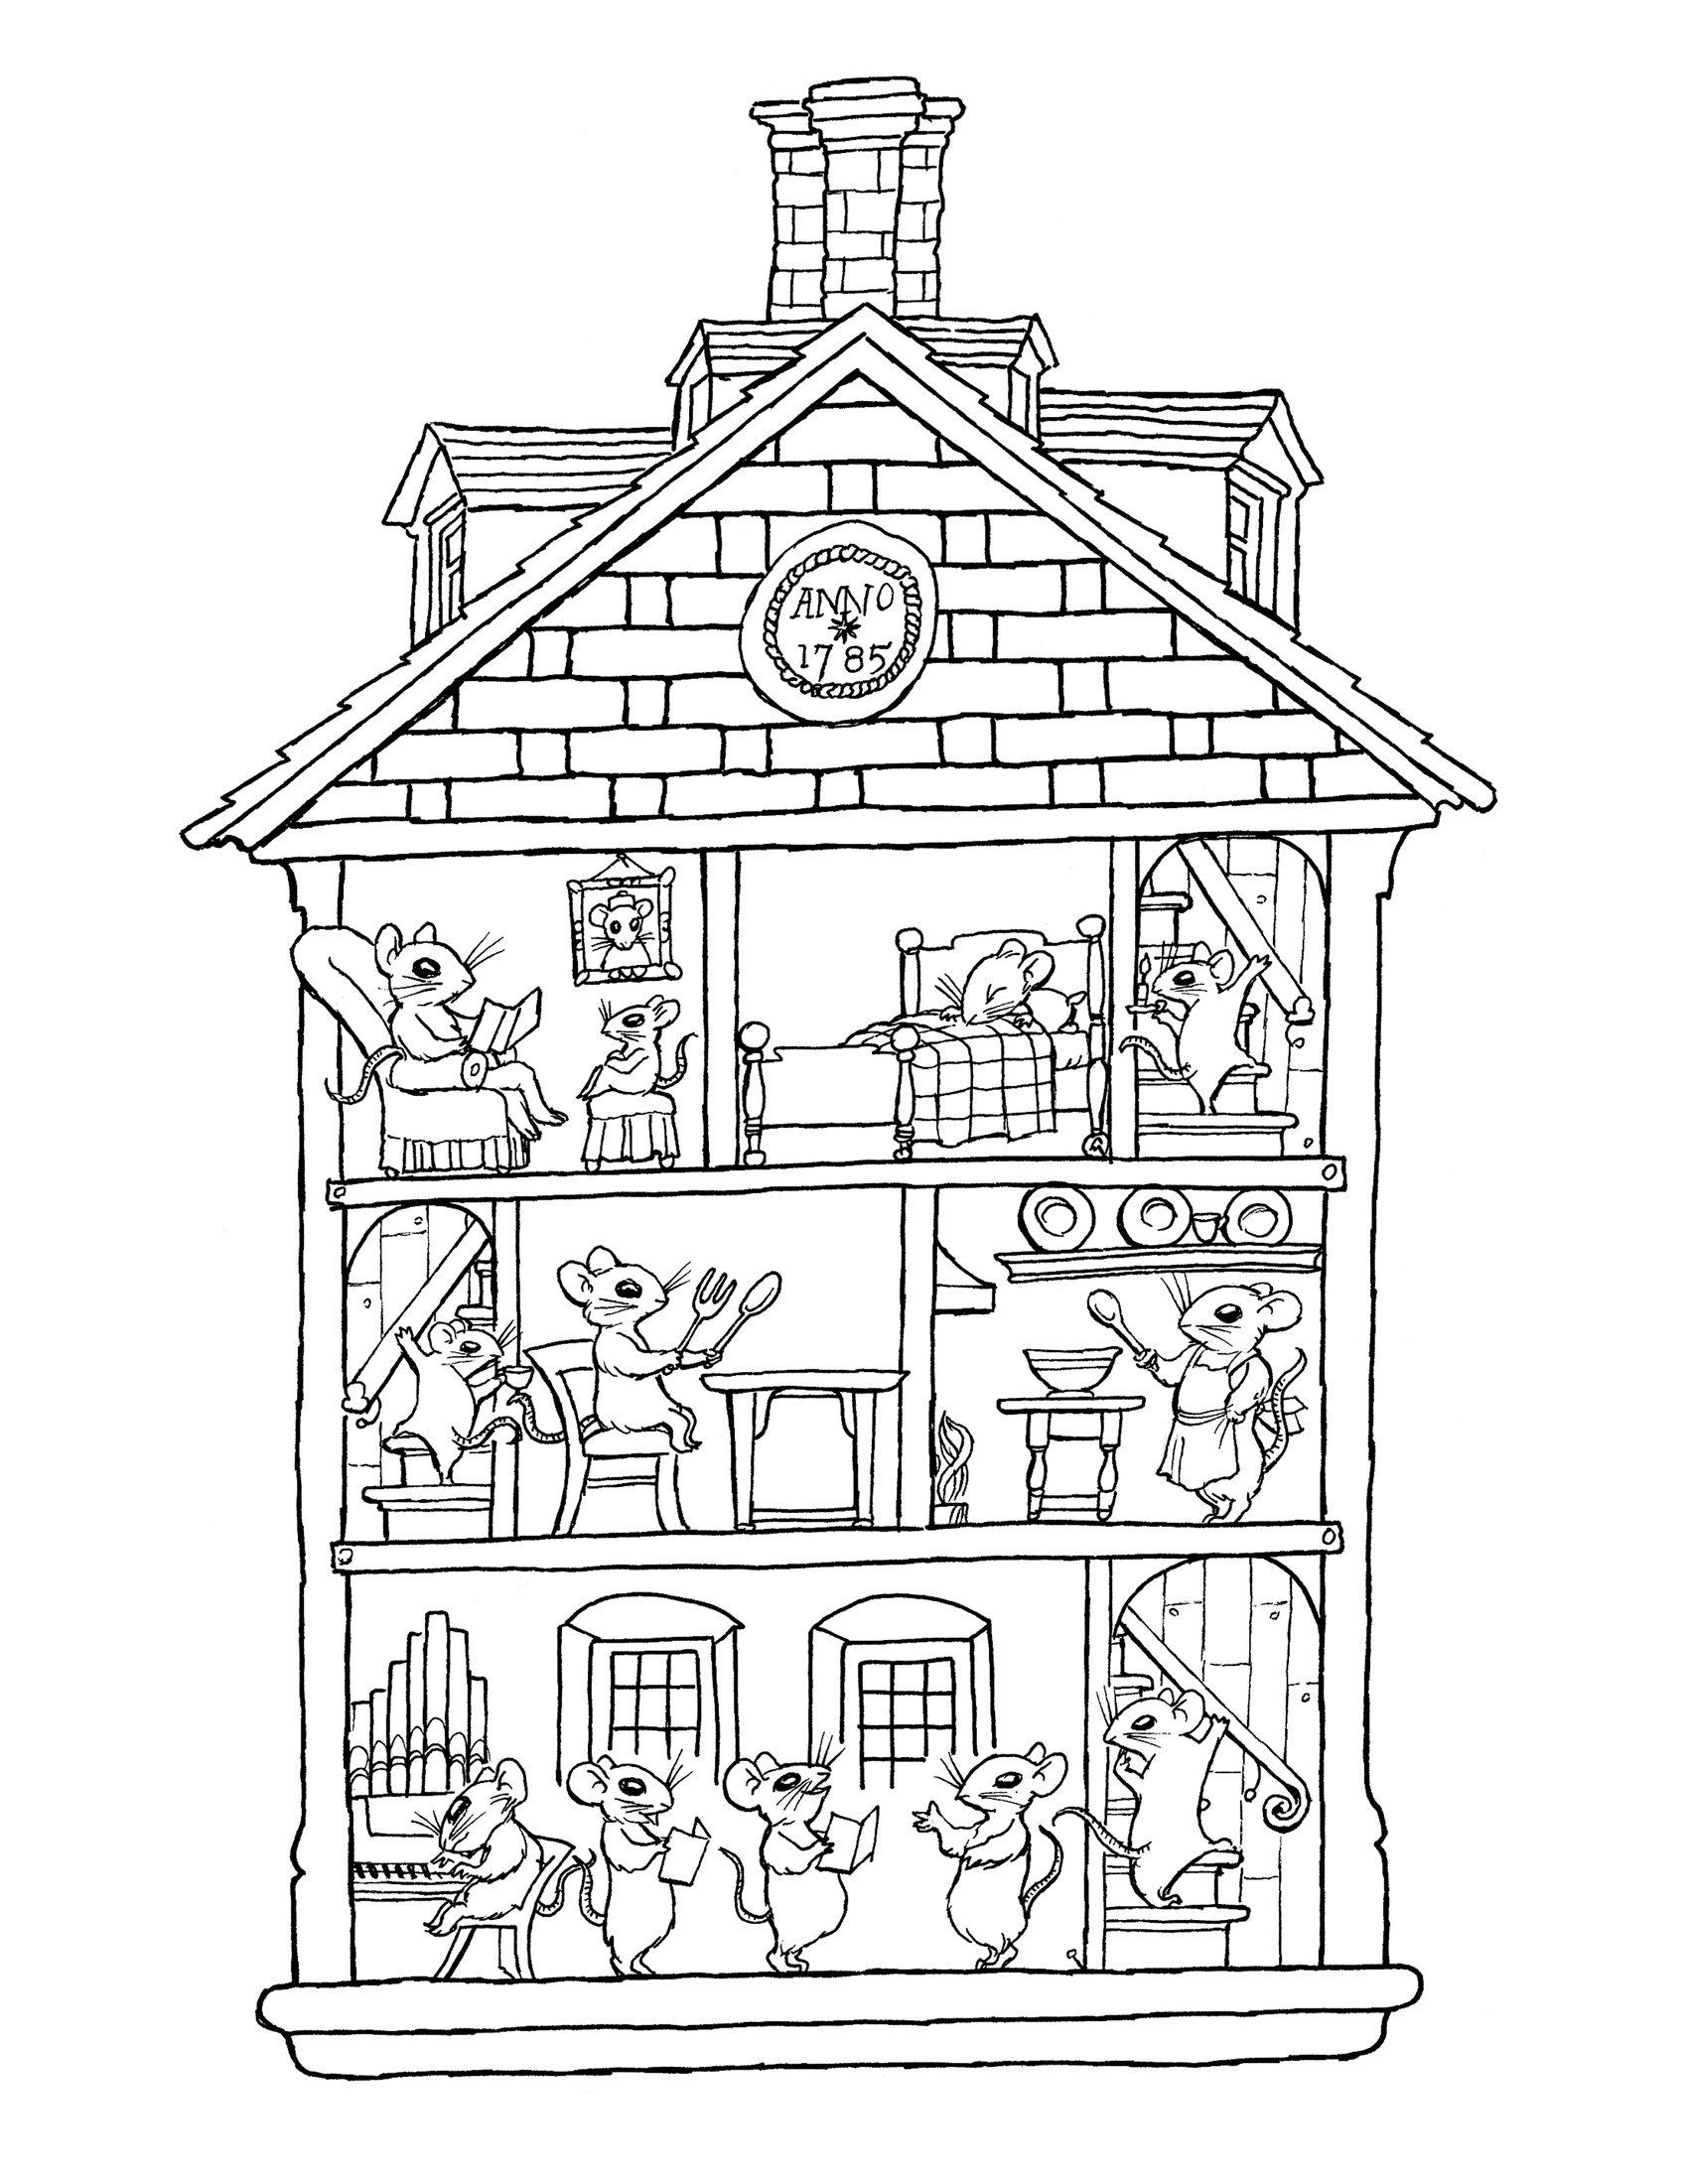 Haunted House Coloring Pages Beautiful The White House Coloring Pages At Getdrawings House Colouring Pages Coloring Pages For Kids Free Coloring Pages